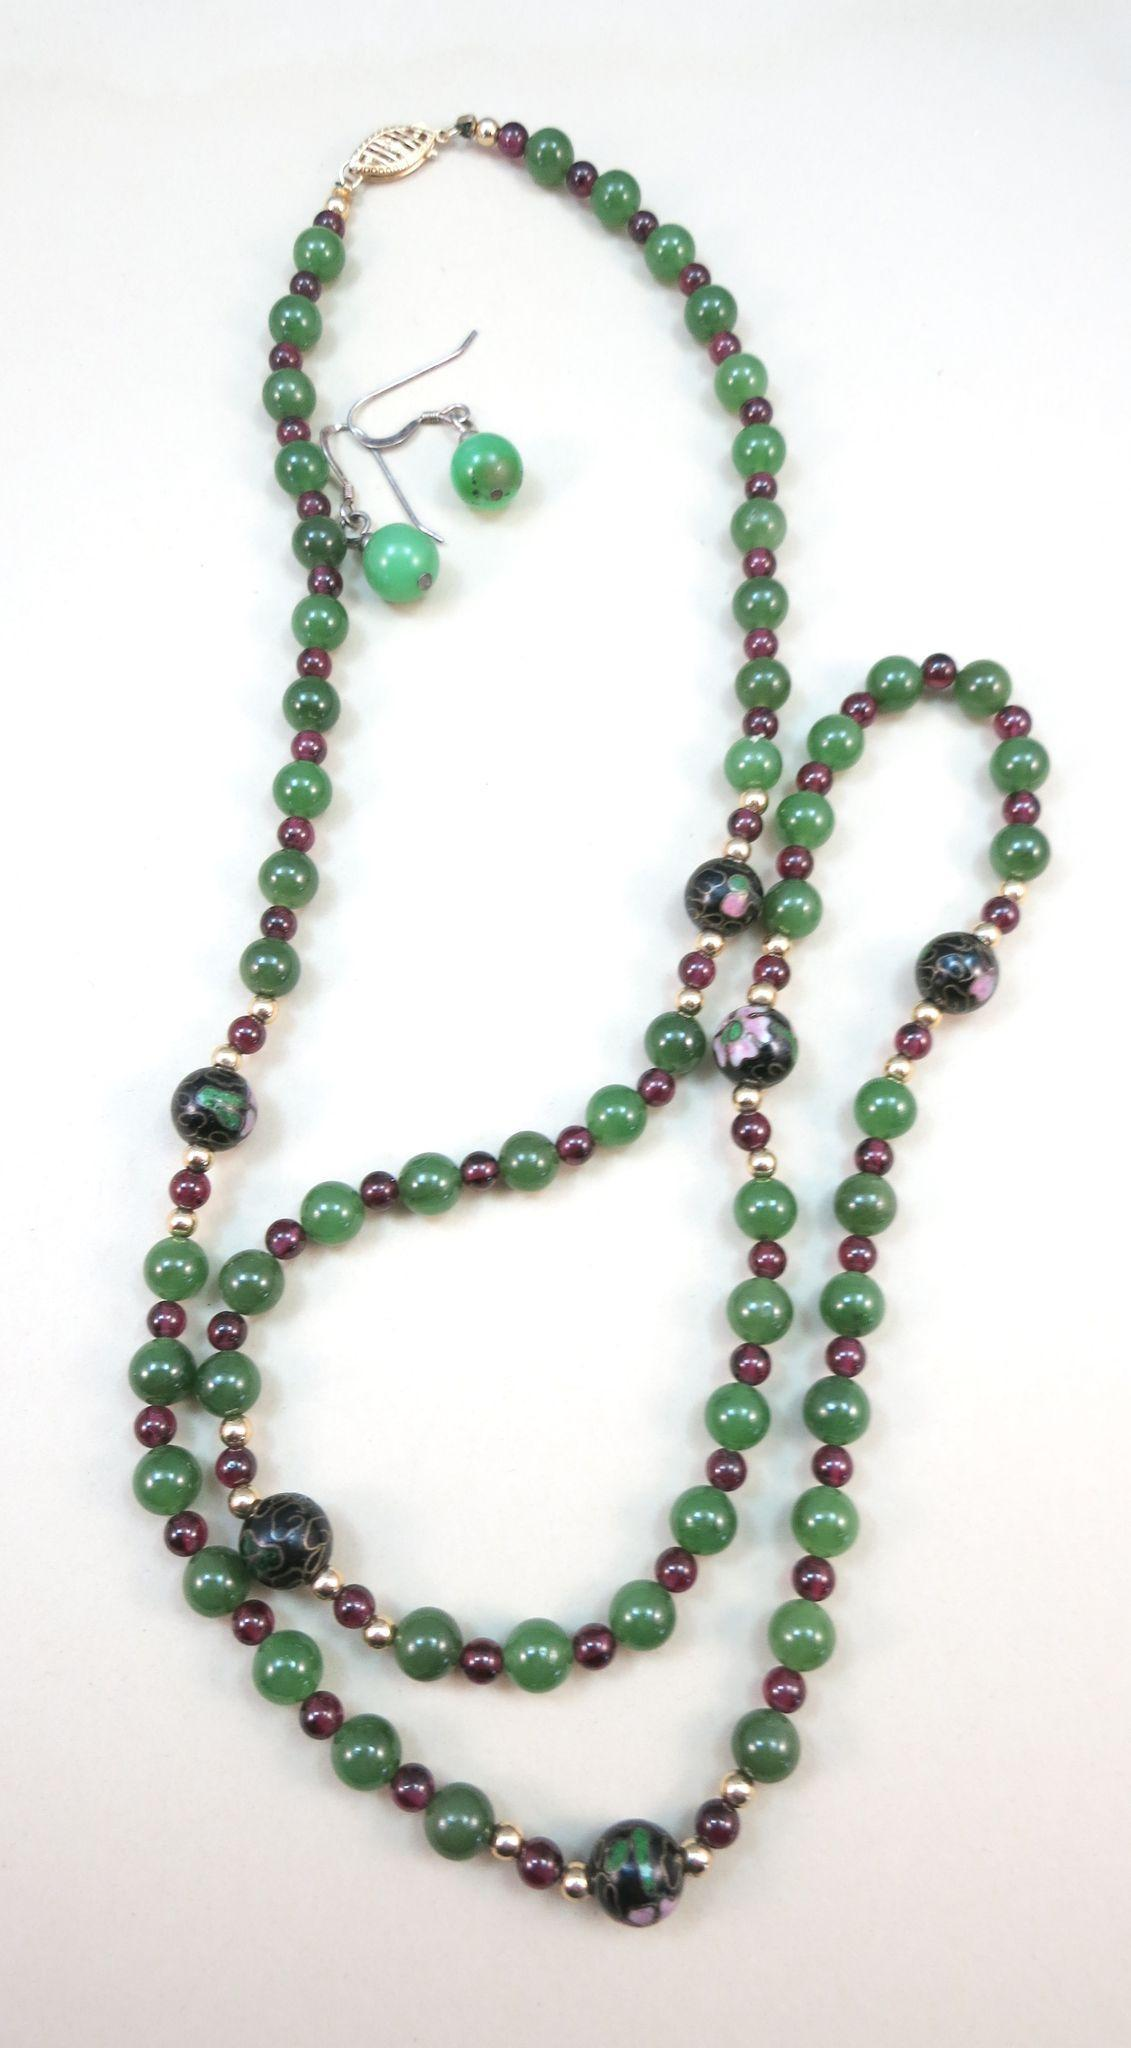 VINTAGE Jadeite Beads, Garnet Beads, Cloisonne beads, and 14k small gold beads  Necklace  Beautiful!